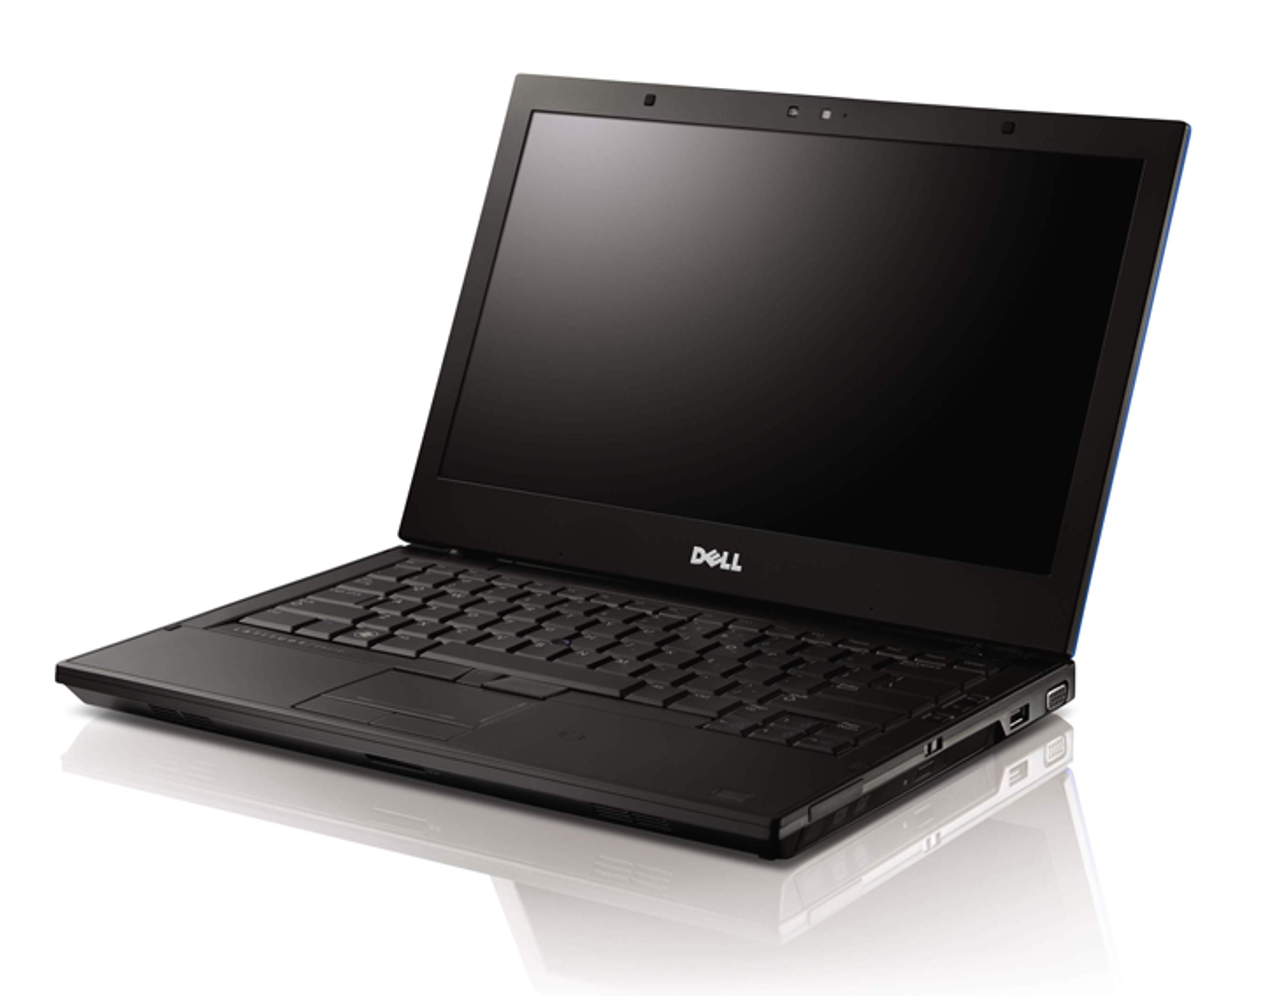 Dell Latitude E4310 Laptop Core i5 2.4GHz, 4GB Ram, 160GB HDD, DVD-RW, Windows 7 Pro 64 Notebook